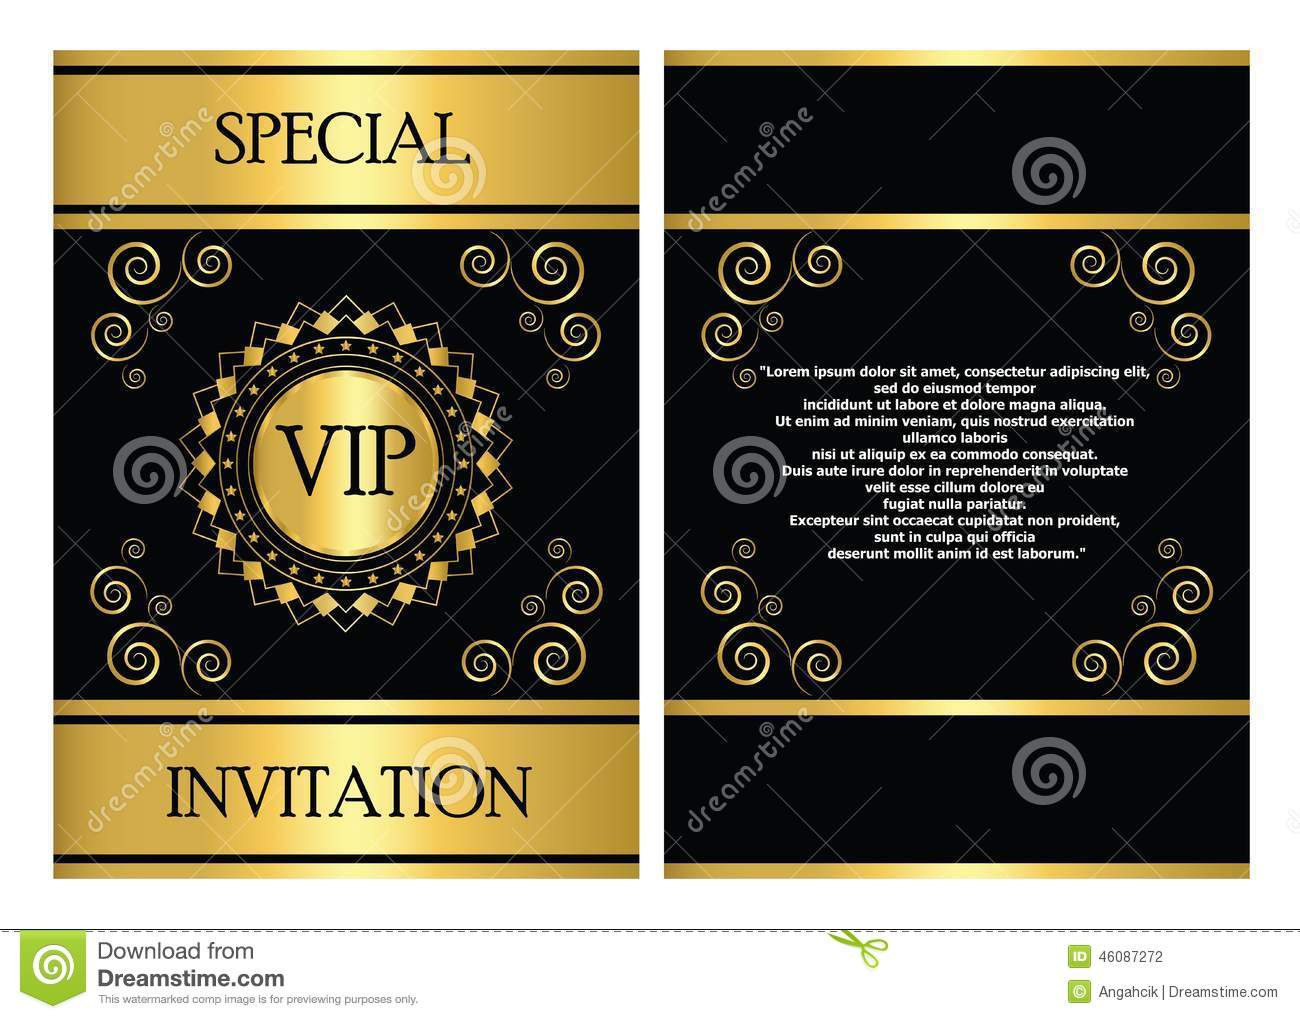 VIP Invitation Card Template Stock Vector - Illustration of company ...